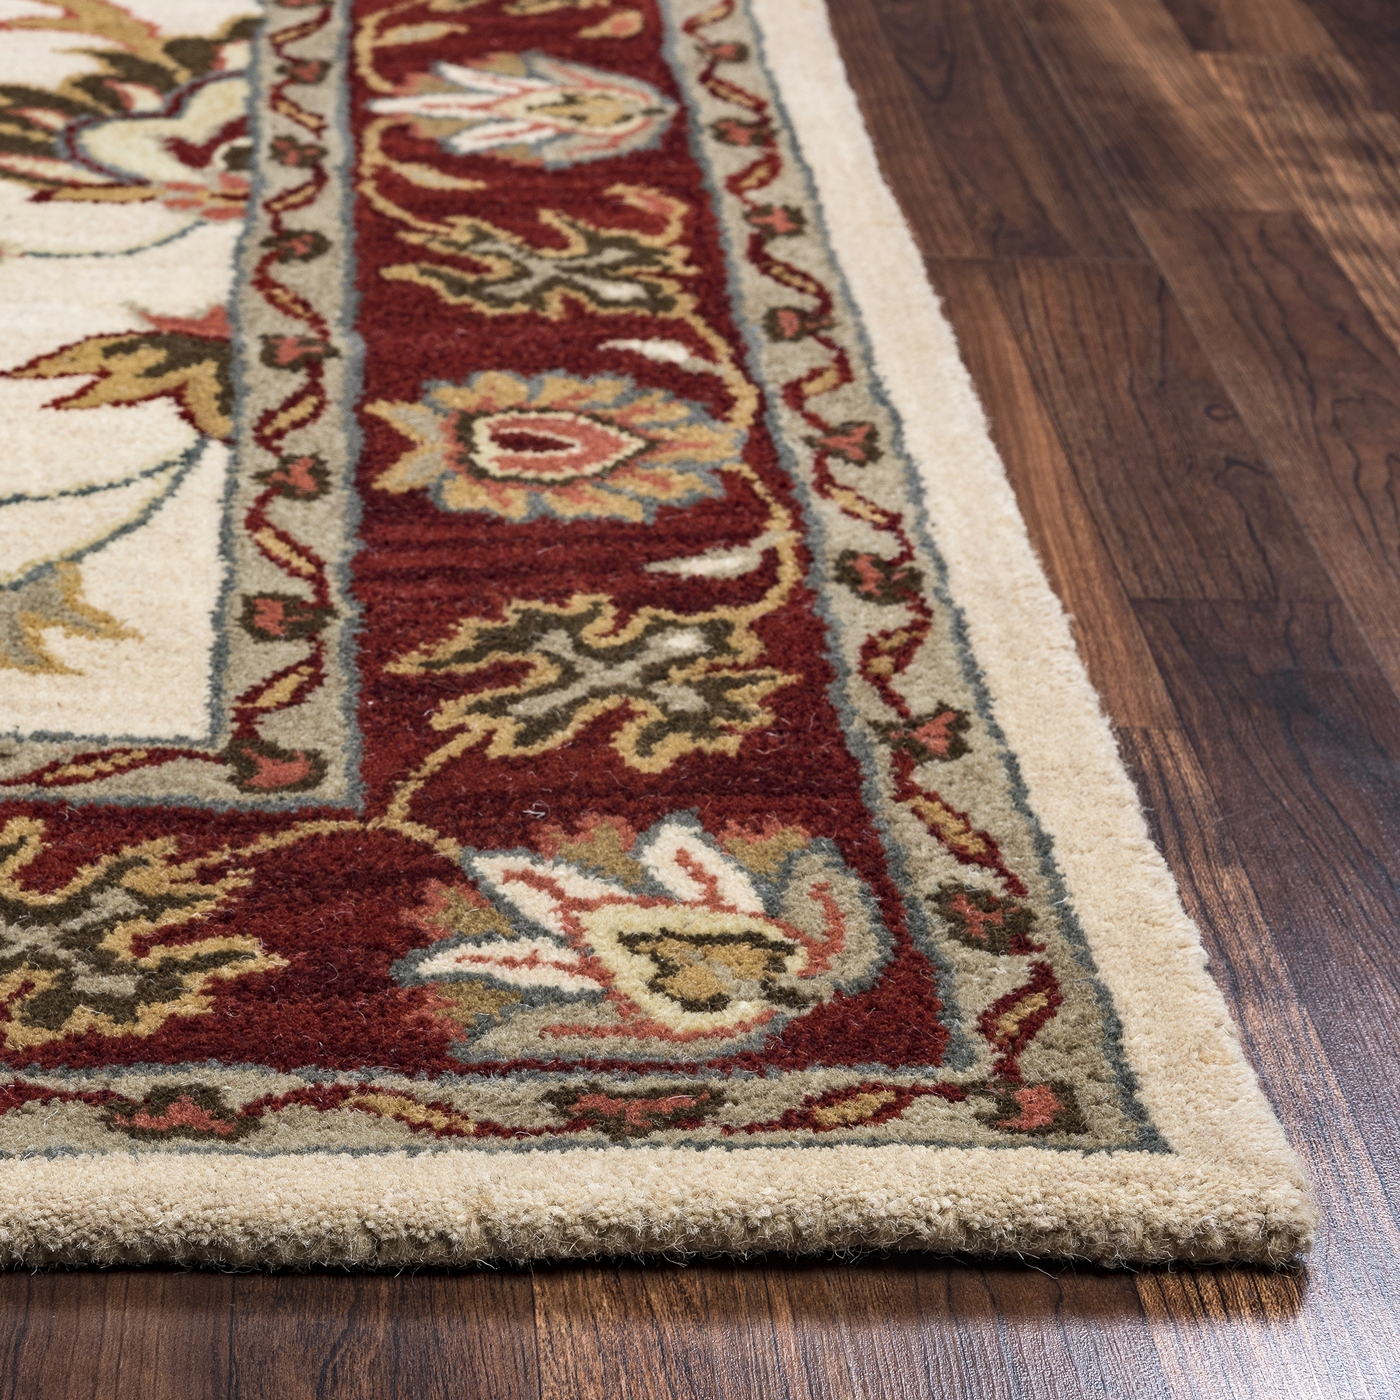 Valintino Ornate Floral Border Wool Area Rug In Beige Red